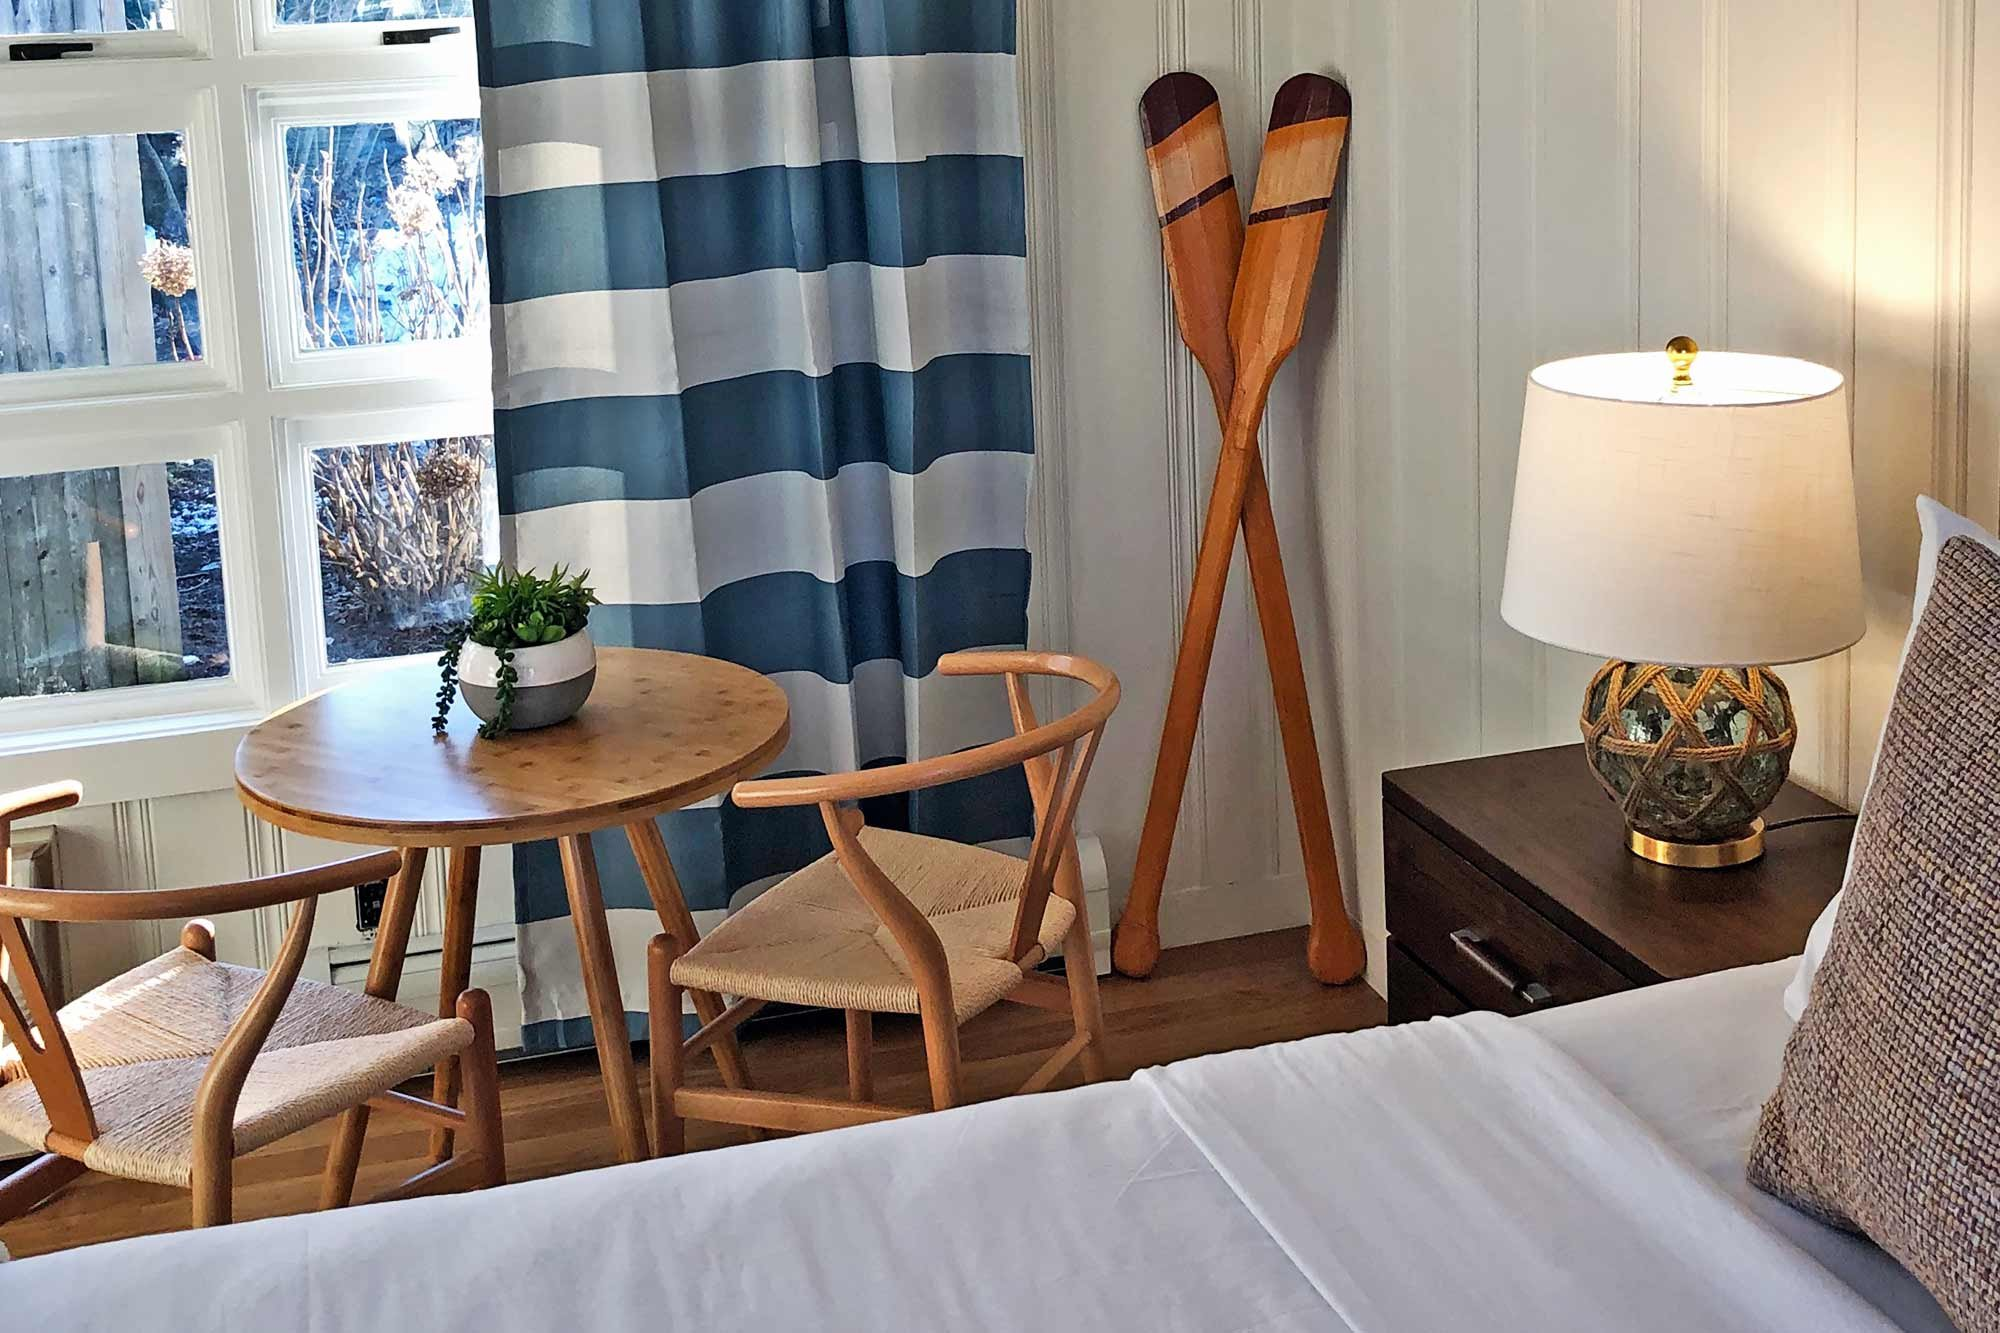 bed near table and chairs